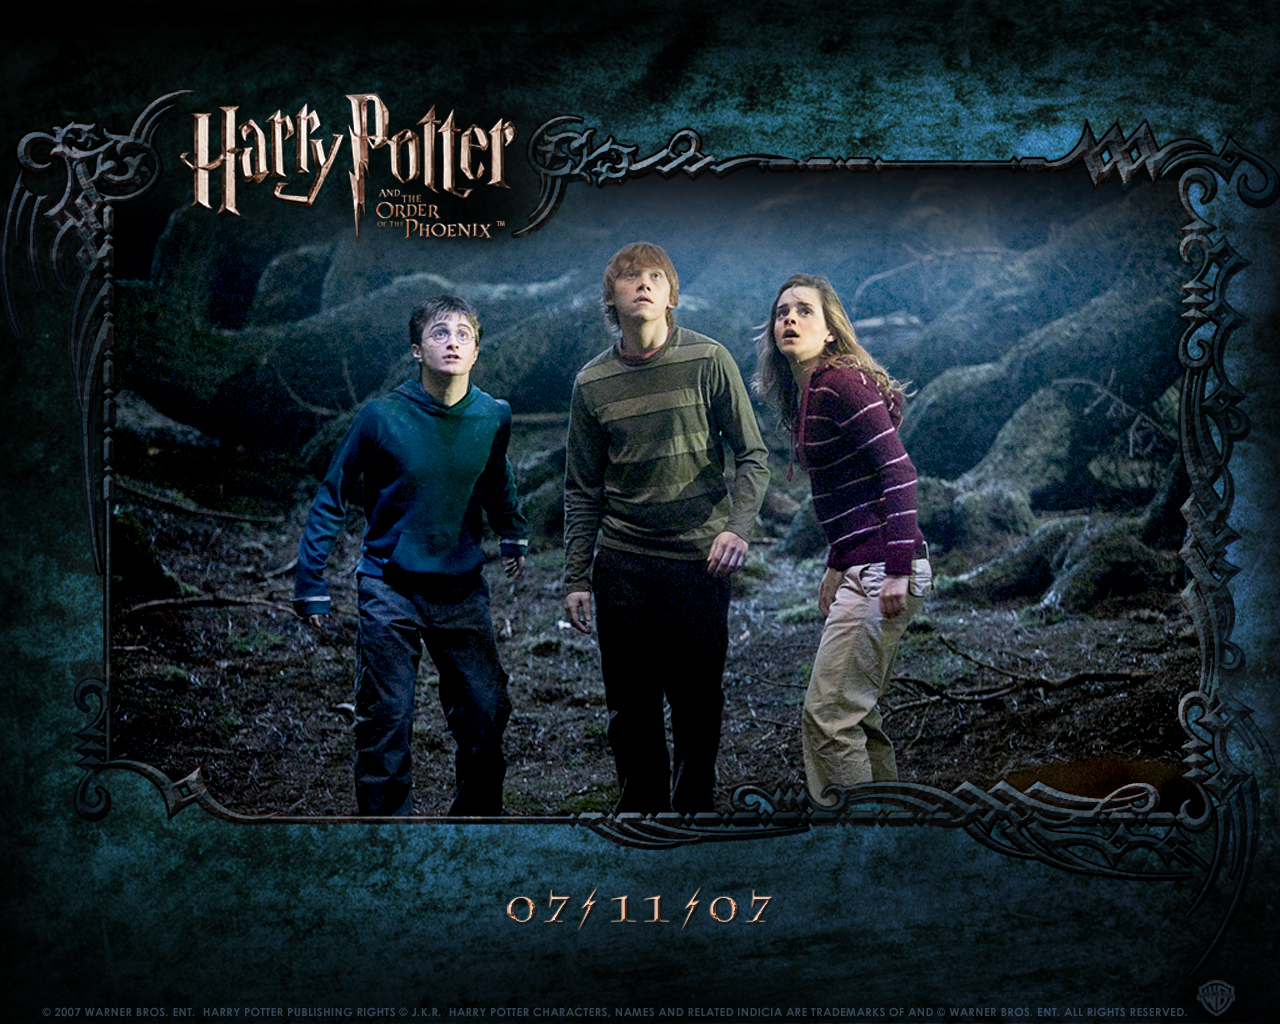 Top Wallpaper Harry Potter Collage - Harry_Potter_and_the_Order_of_the_Phoenix_8  Snapshot_667527.jpg